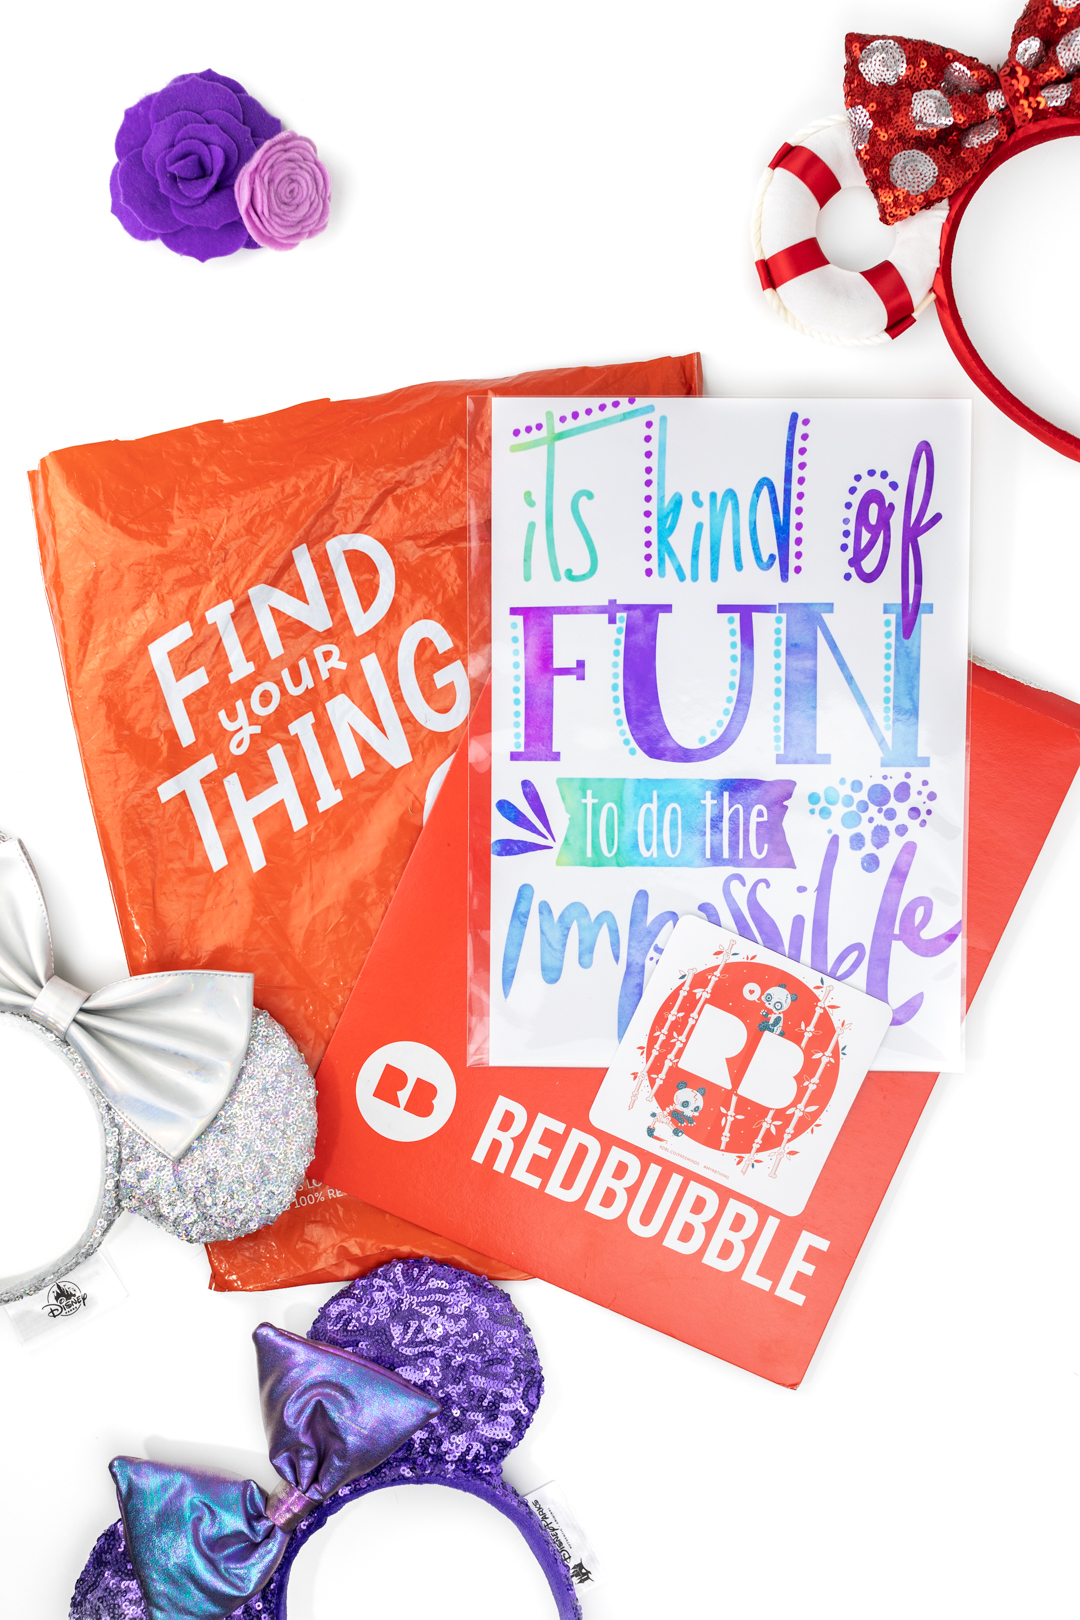 red bubble unboxing to reveal disney inspired goodies.